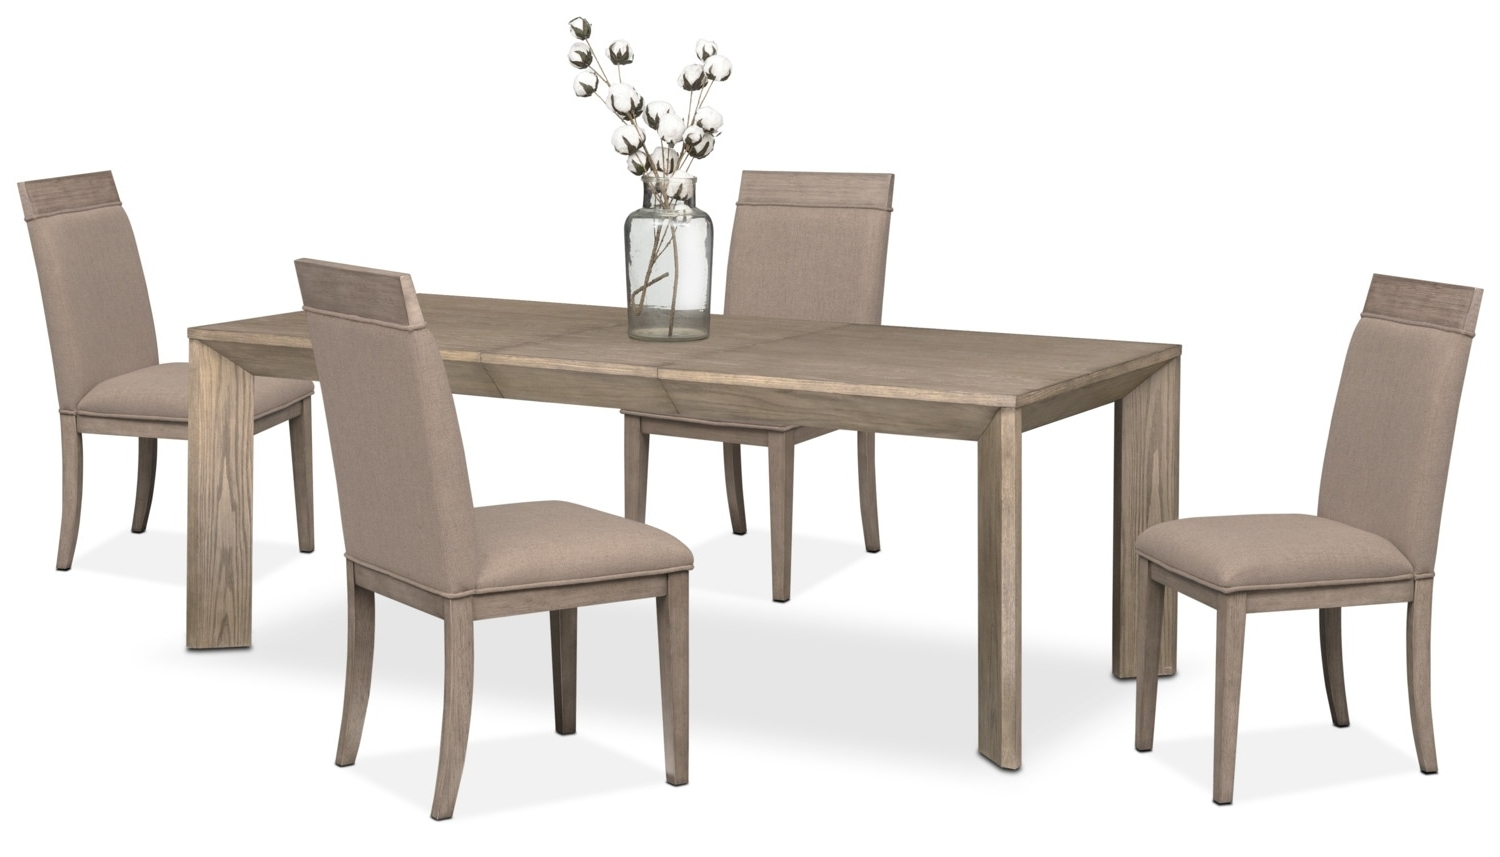 Value City Furniture And With Regard To Gavin Dining Tables (View 22 of 25)